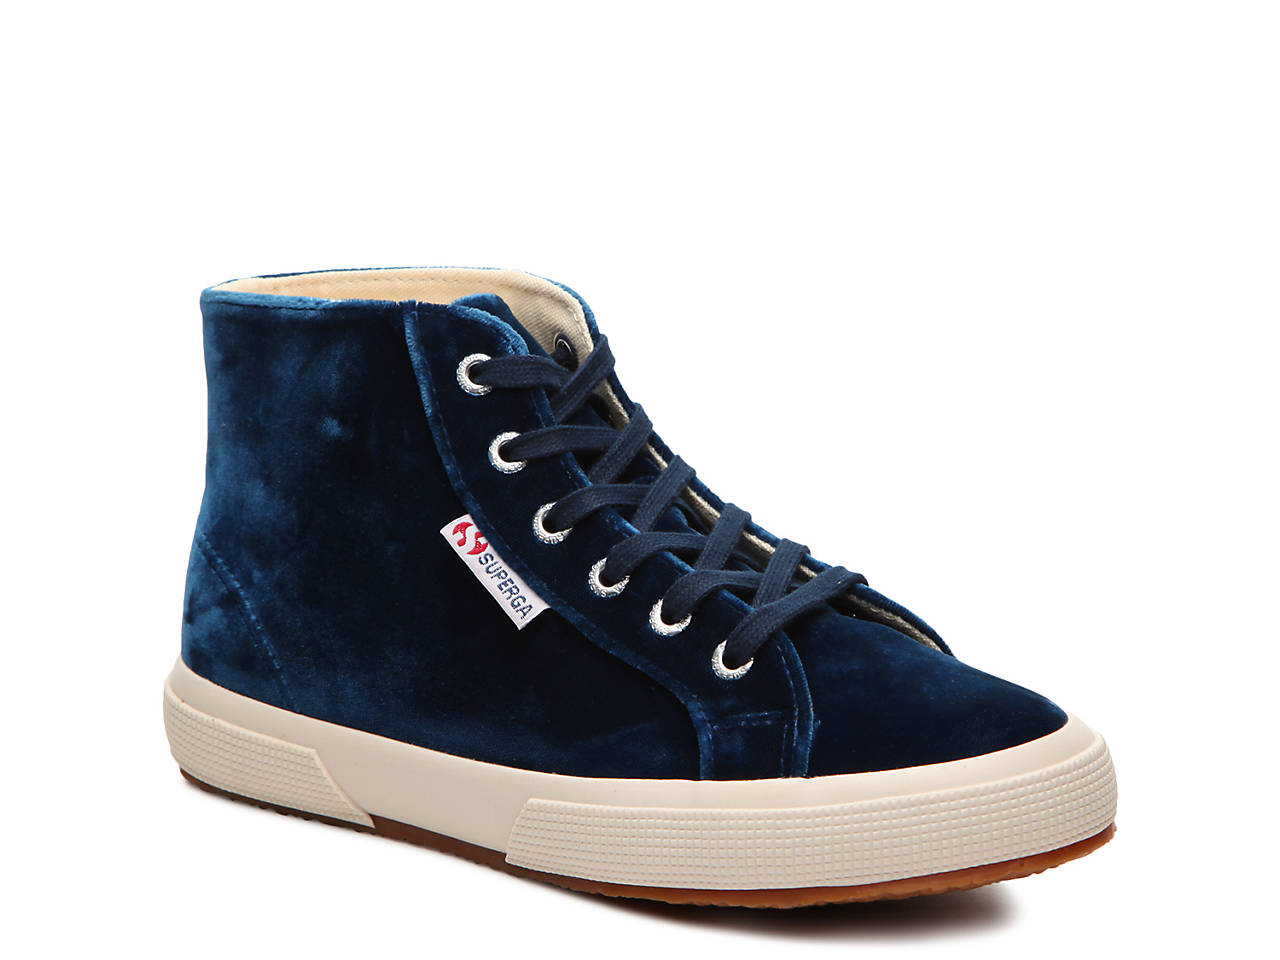 Superga Velvet High-Top Sneakers